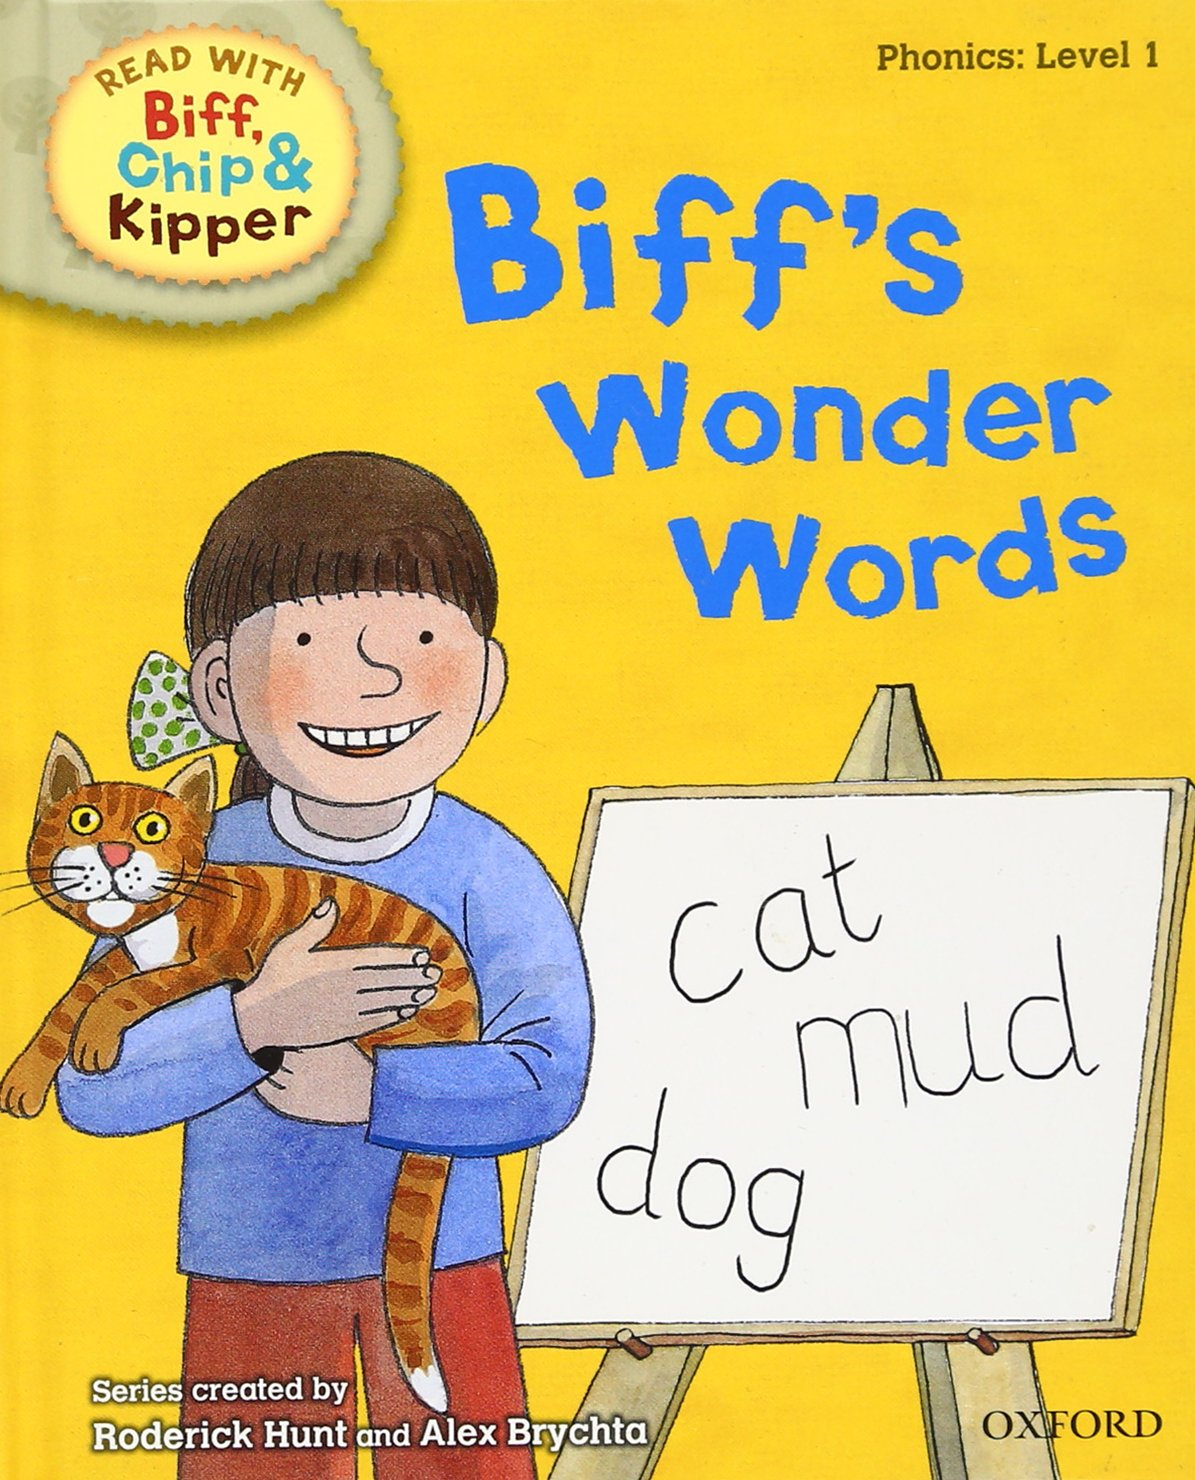 Download Oxford Reading Tree Read with Biff, Chip, and Kipper: Phonics: Level 1: Biff's Wonder Words (Read with Biff, Chip & Kipper. Phonics. Level 1) pdf epub